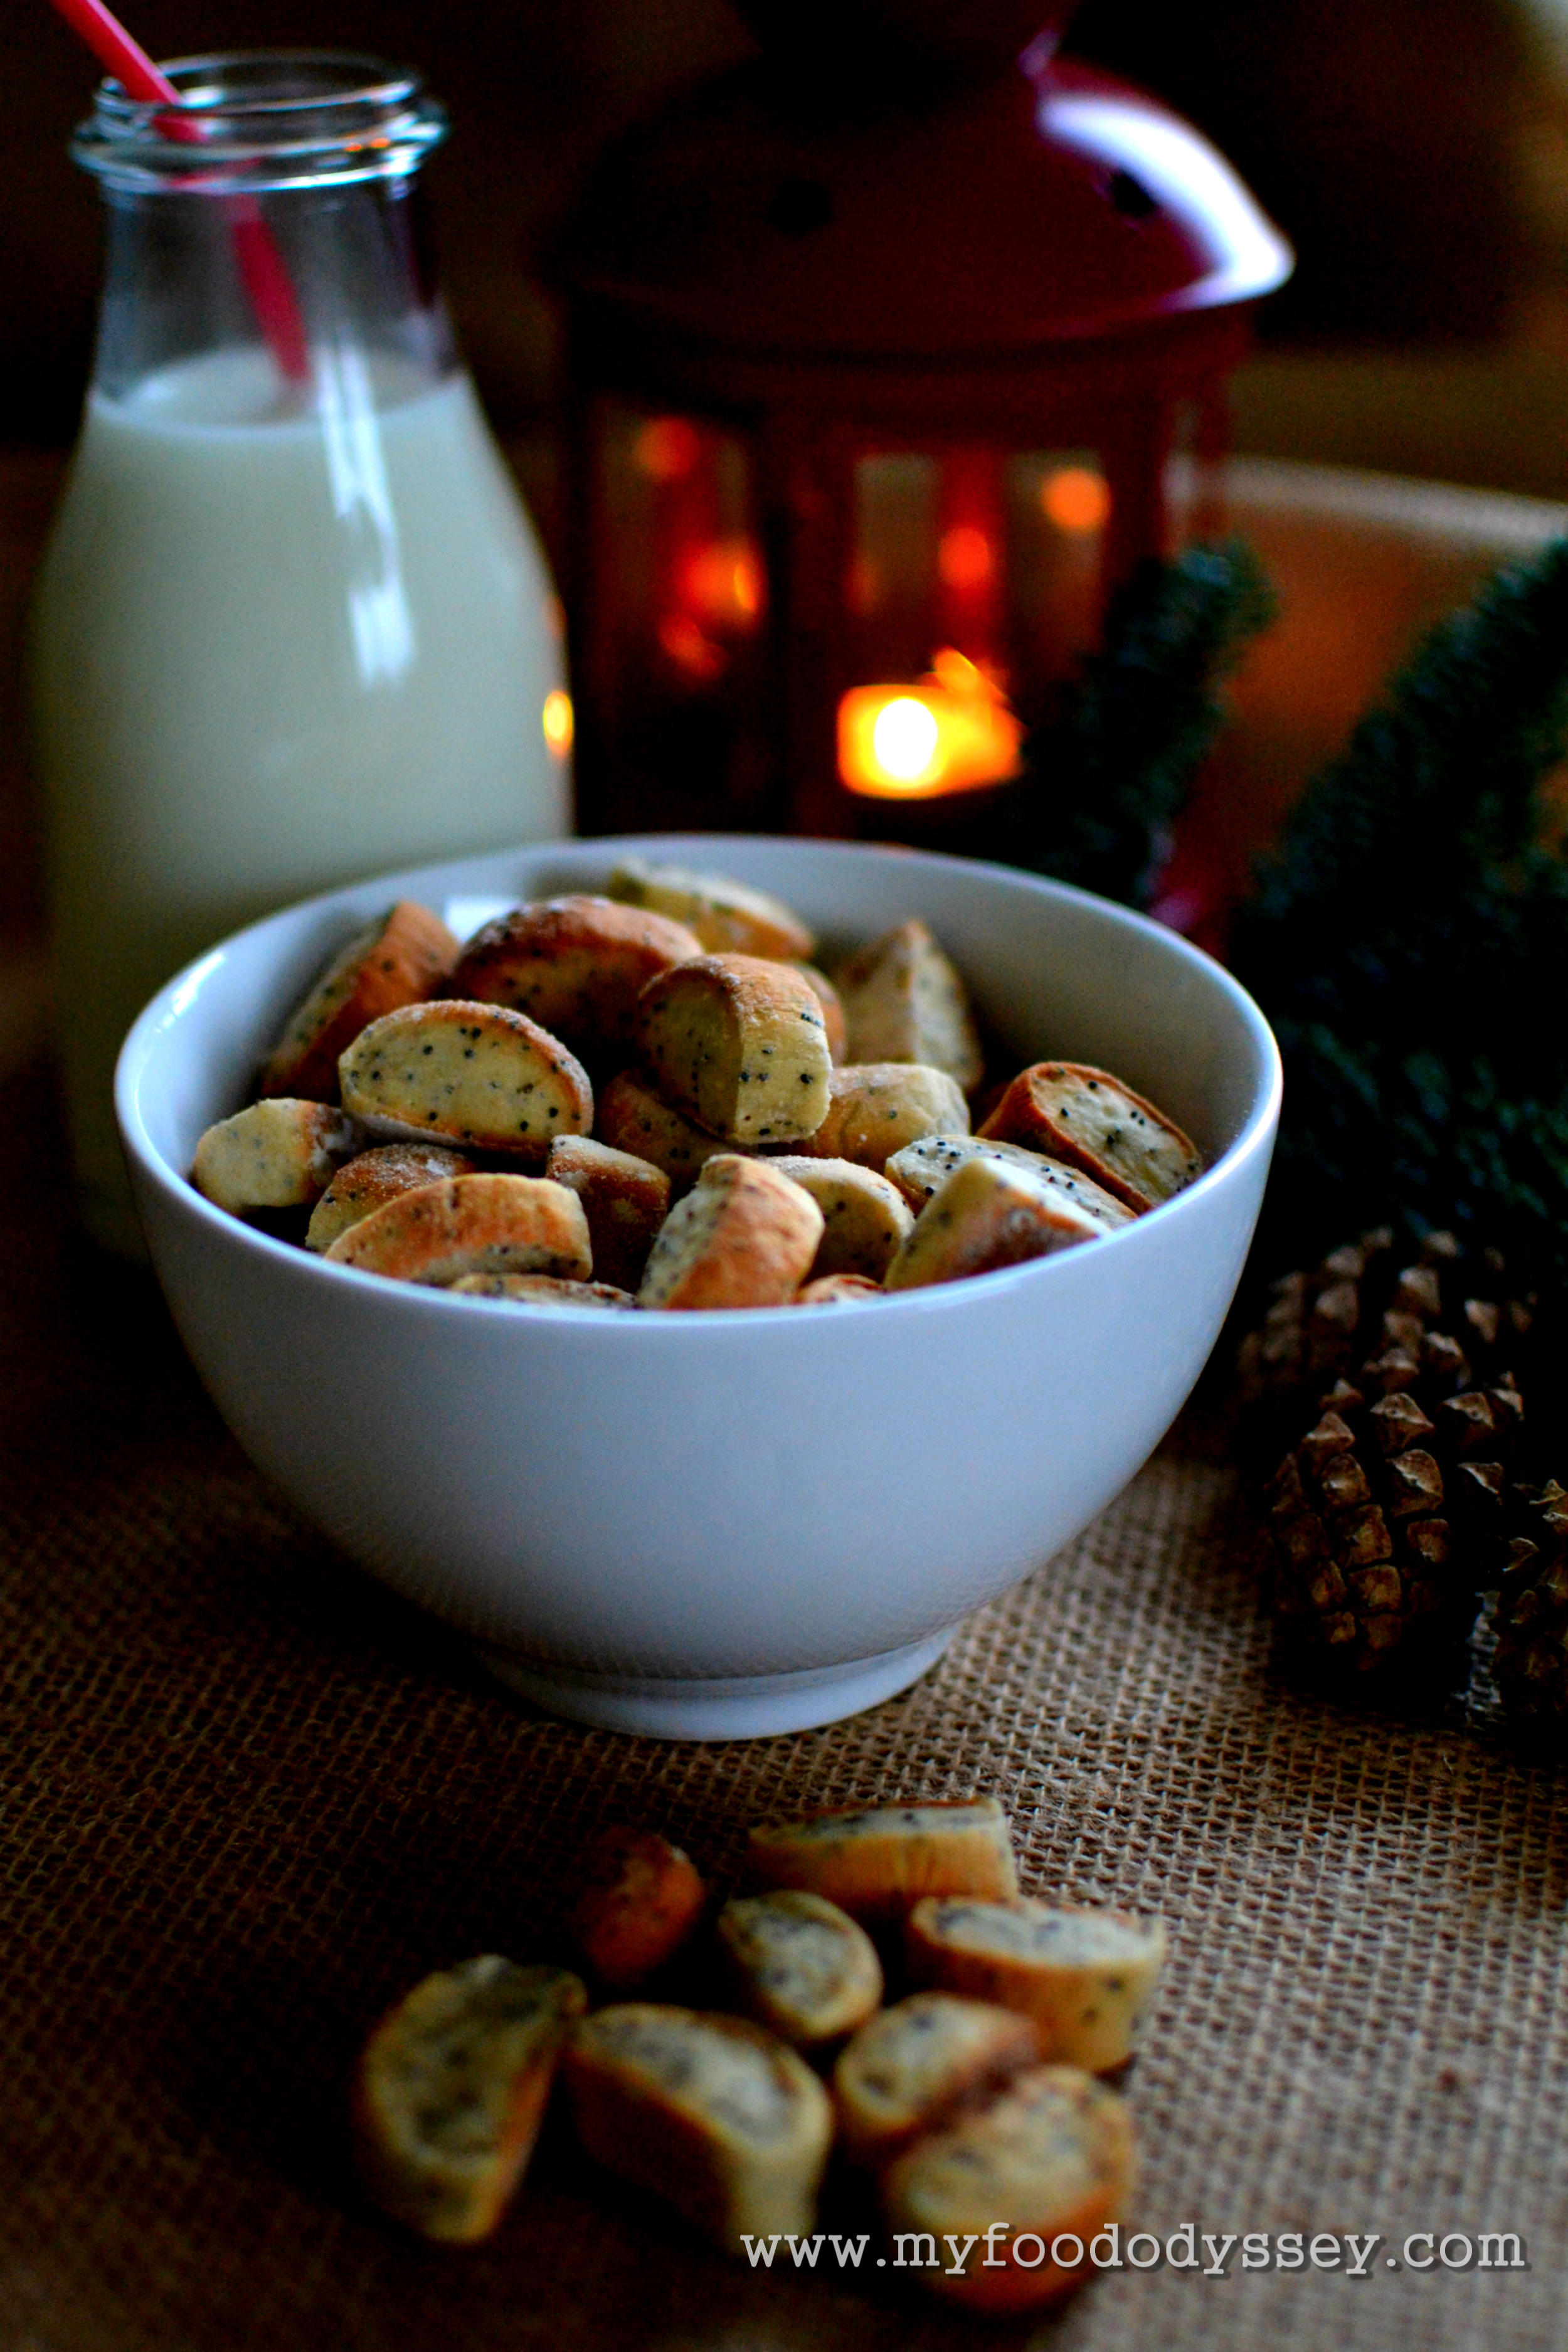 Lithuanian christmas eve biscuits kiukai recipe my food odyssey lithuanian christmas eve biscuits kiukai myfoododyssey forumfinder Image collections